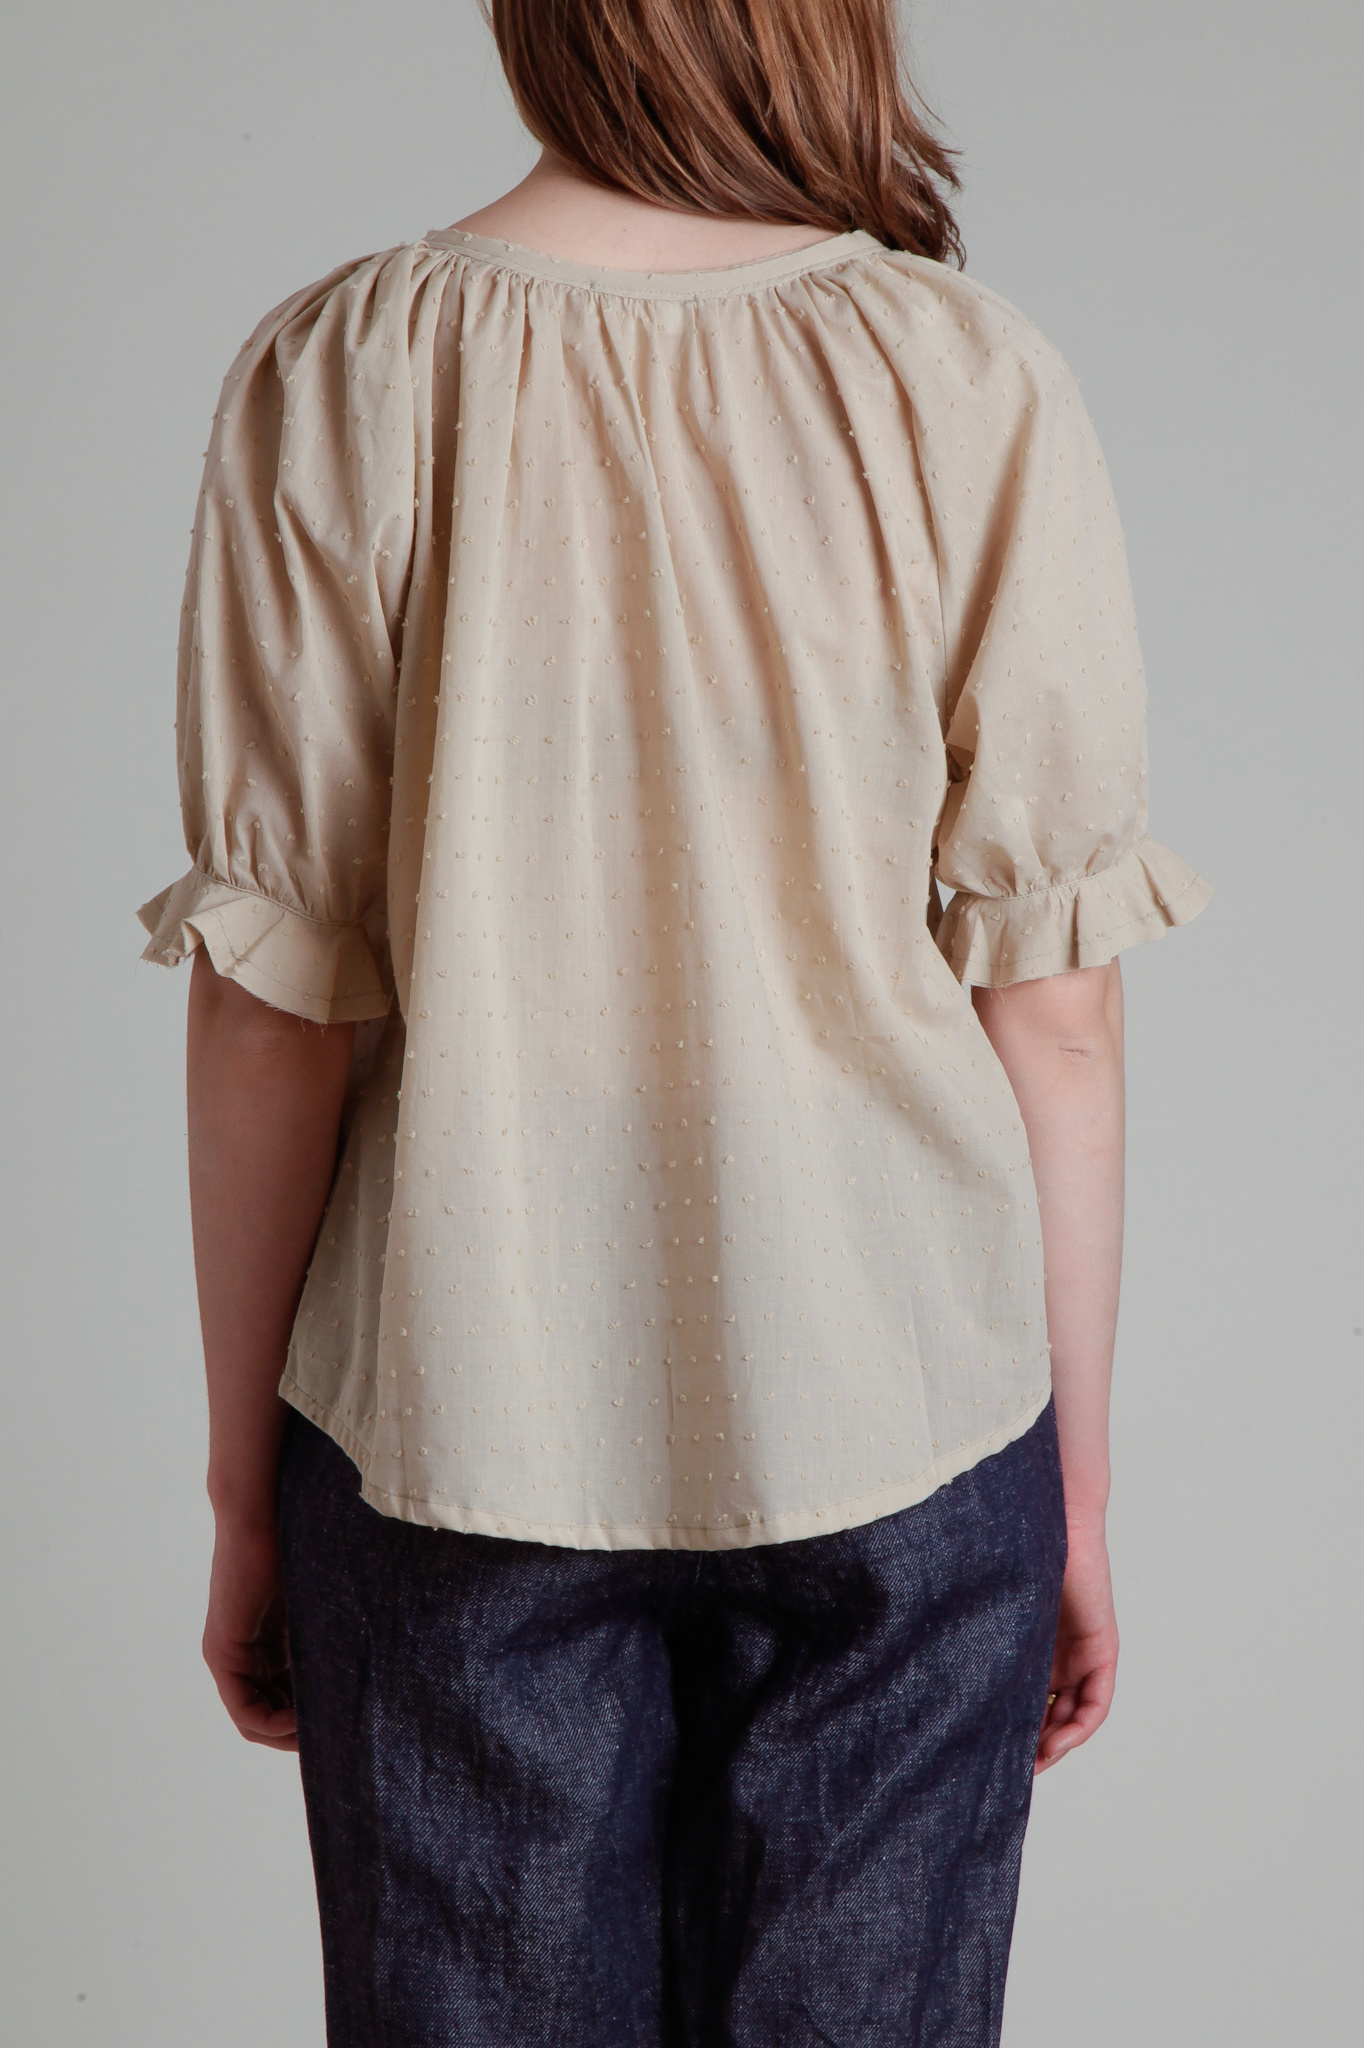 Moskiddos Beige Swiss Dot Cotton Blouse with Puff Sleeves